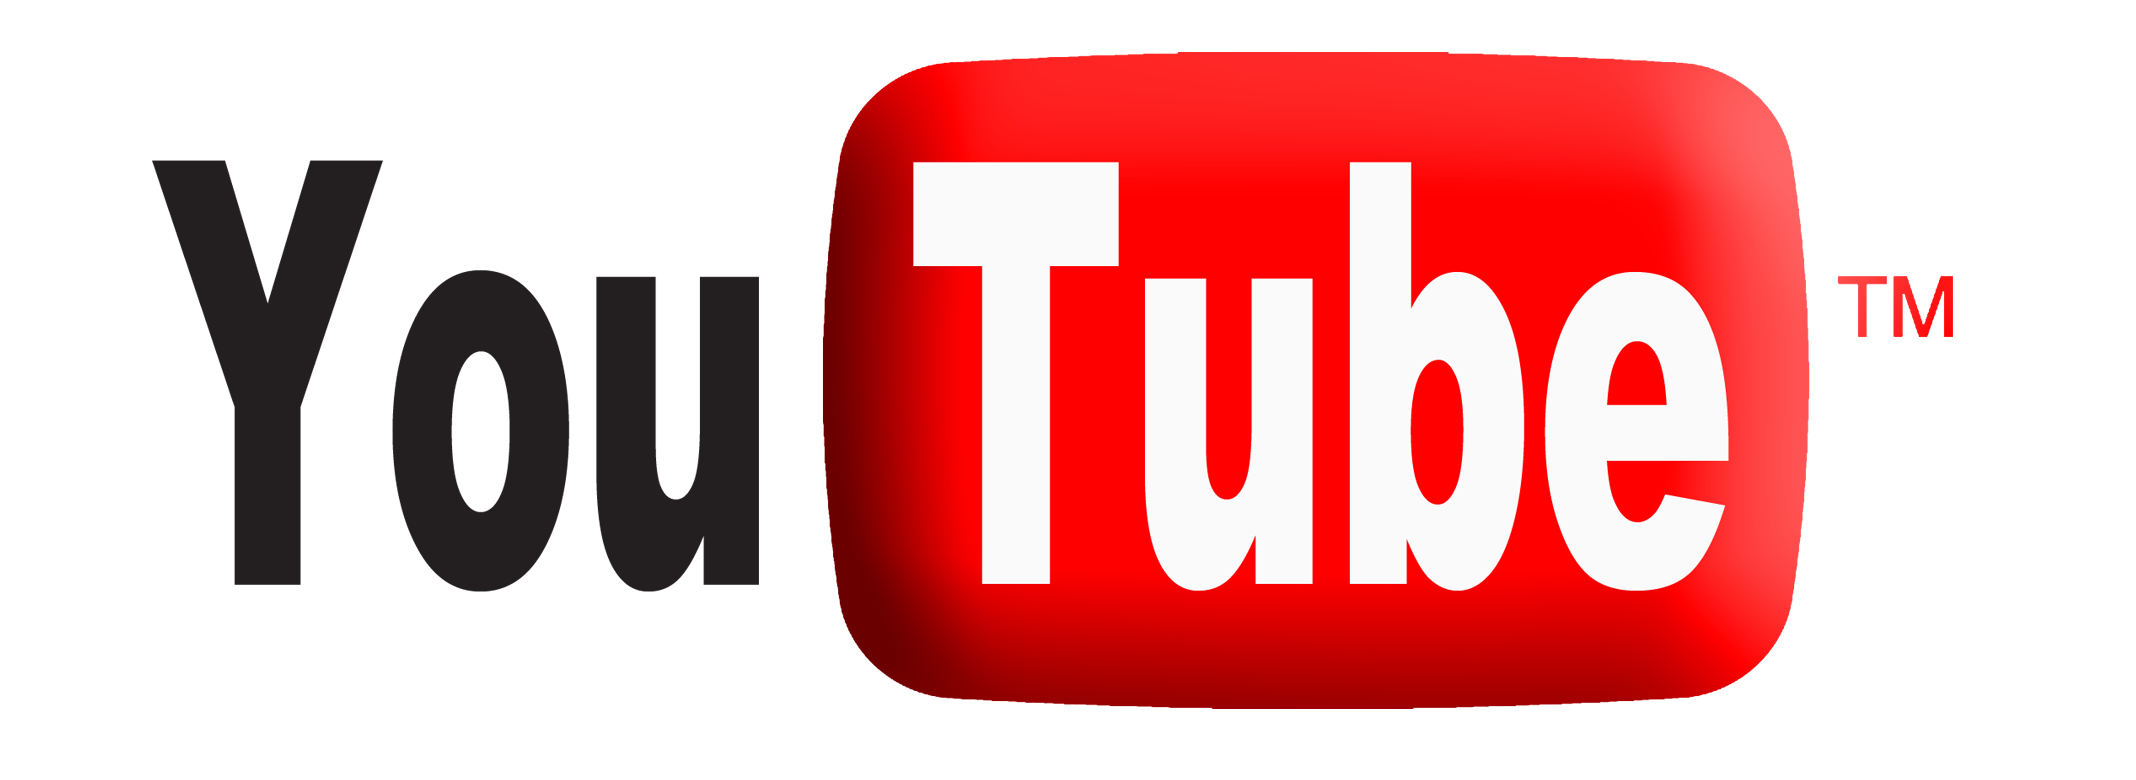 Youtube clipart original. Channel initiative logo advertising